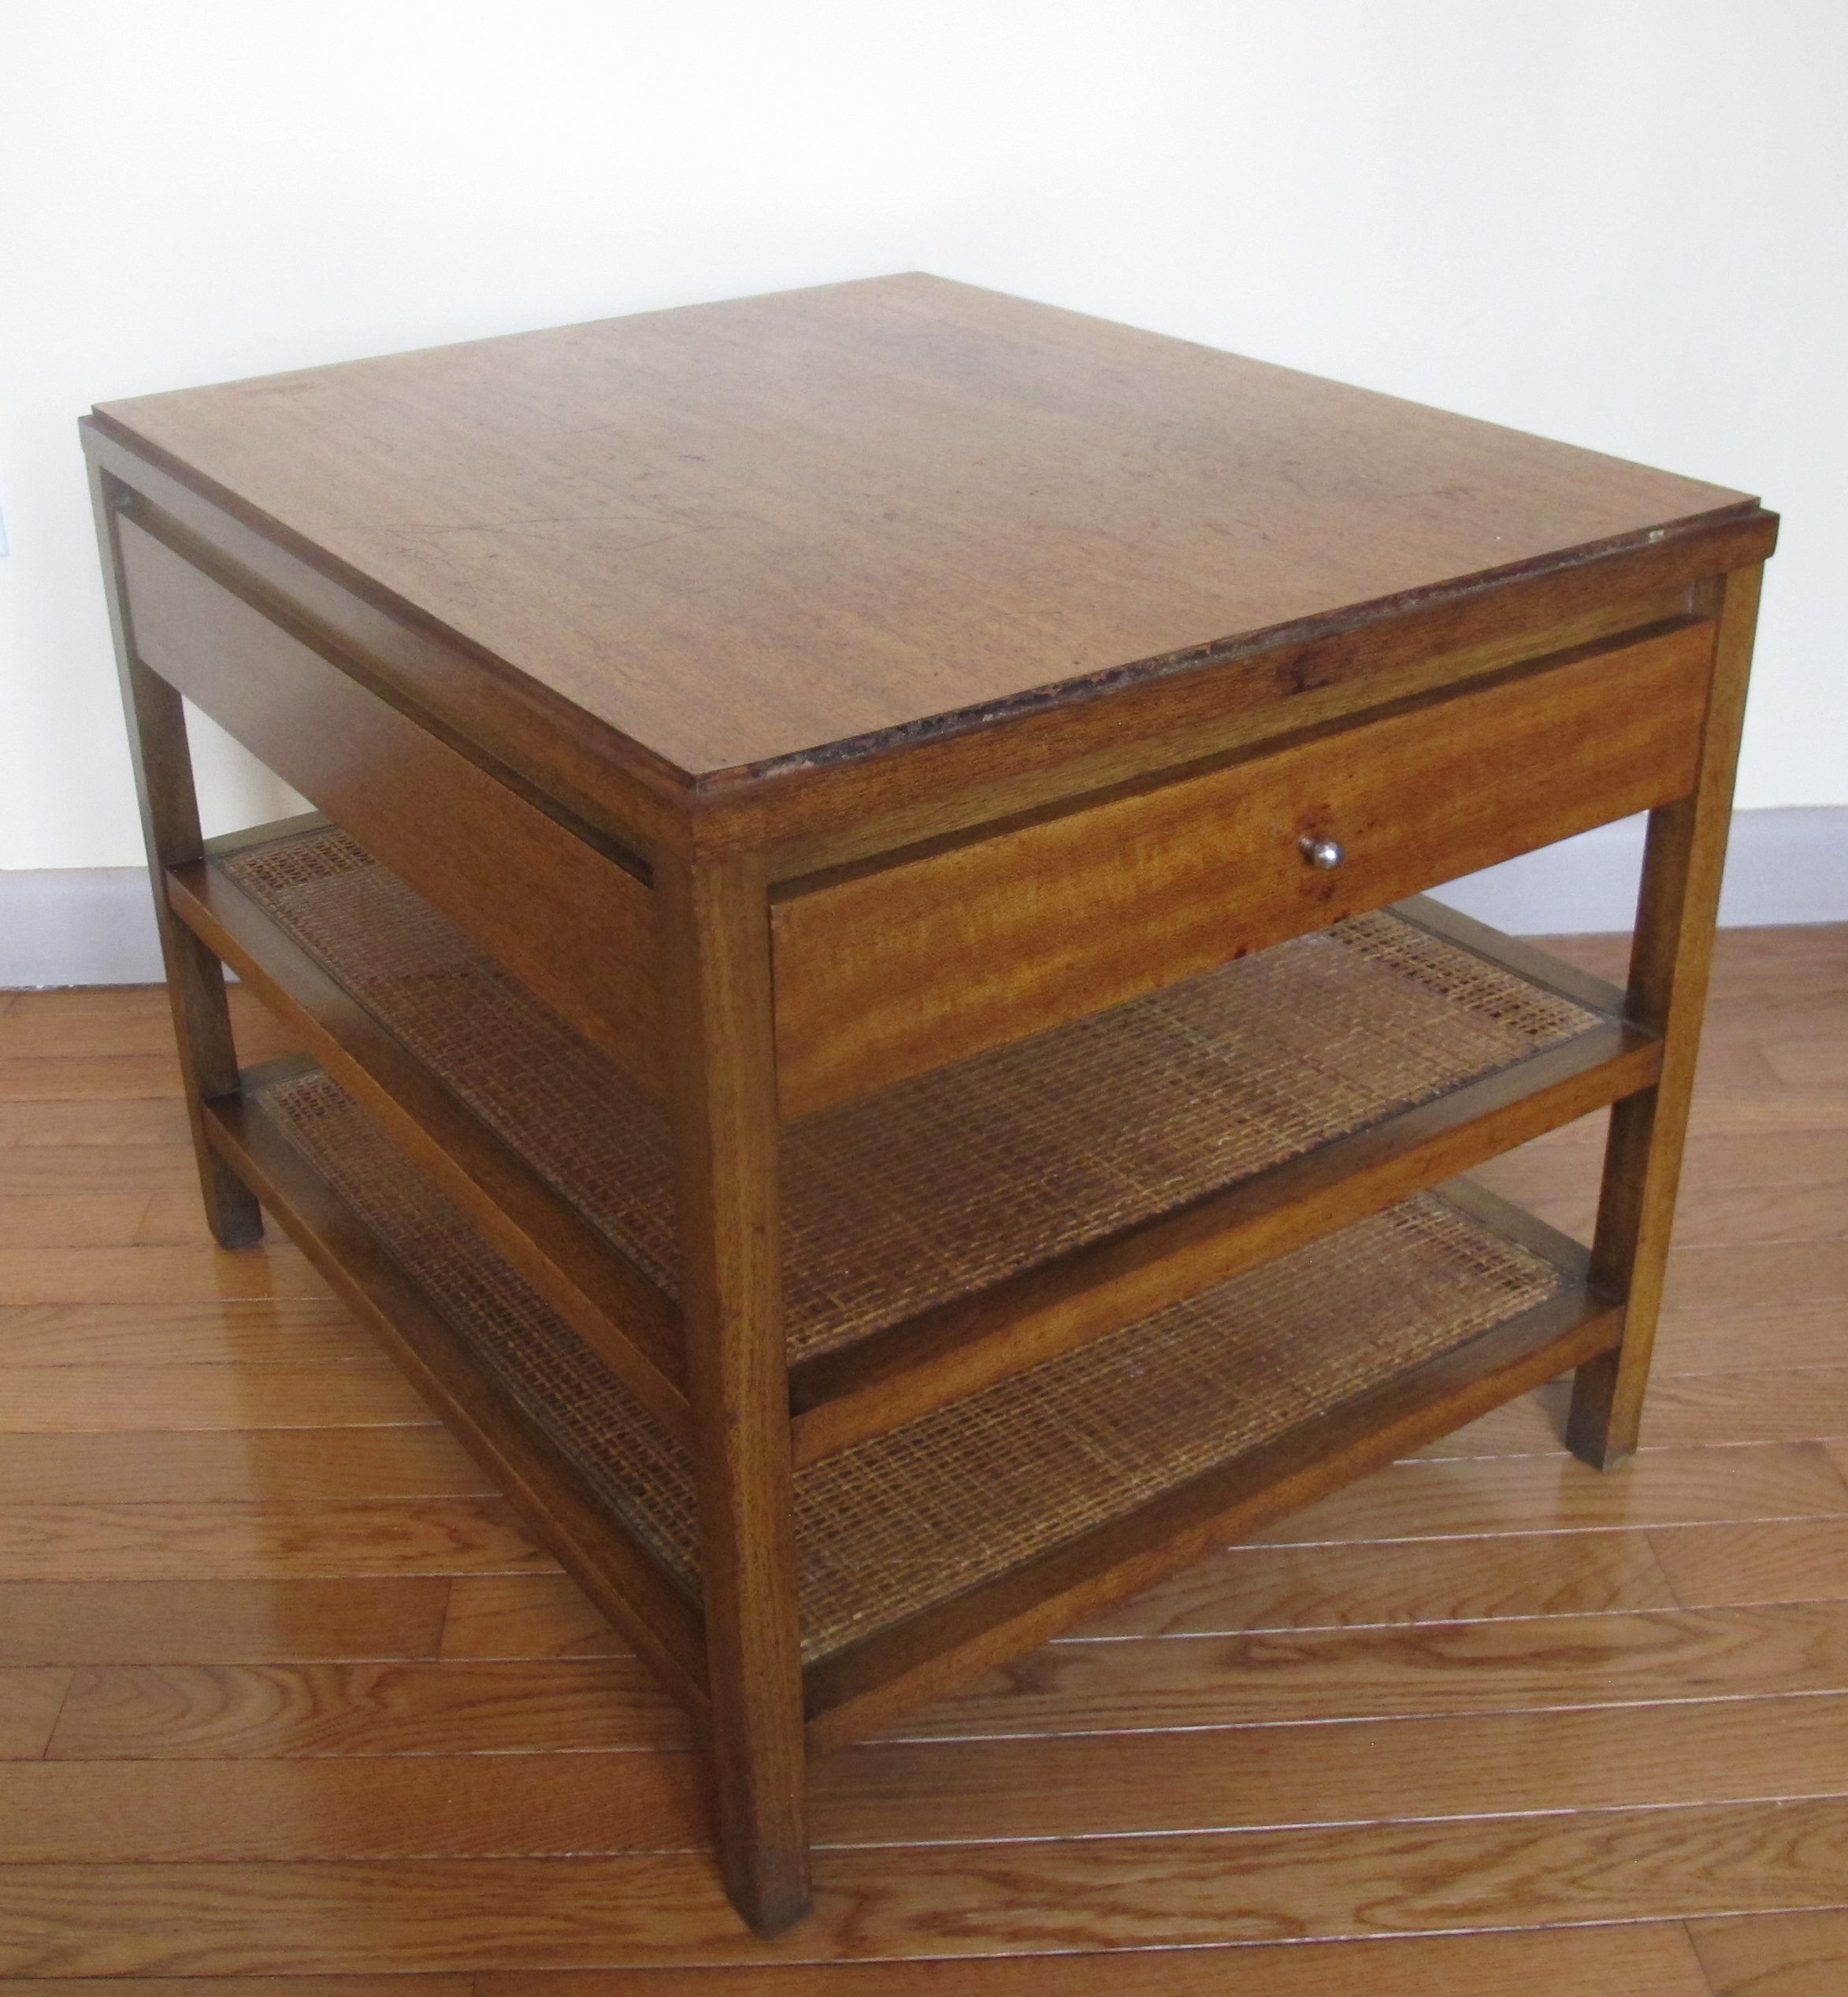 MID CENTURY PAUL MCCOBB END TABLE BY CALVIN FURNITURE